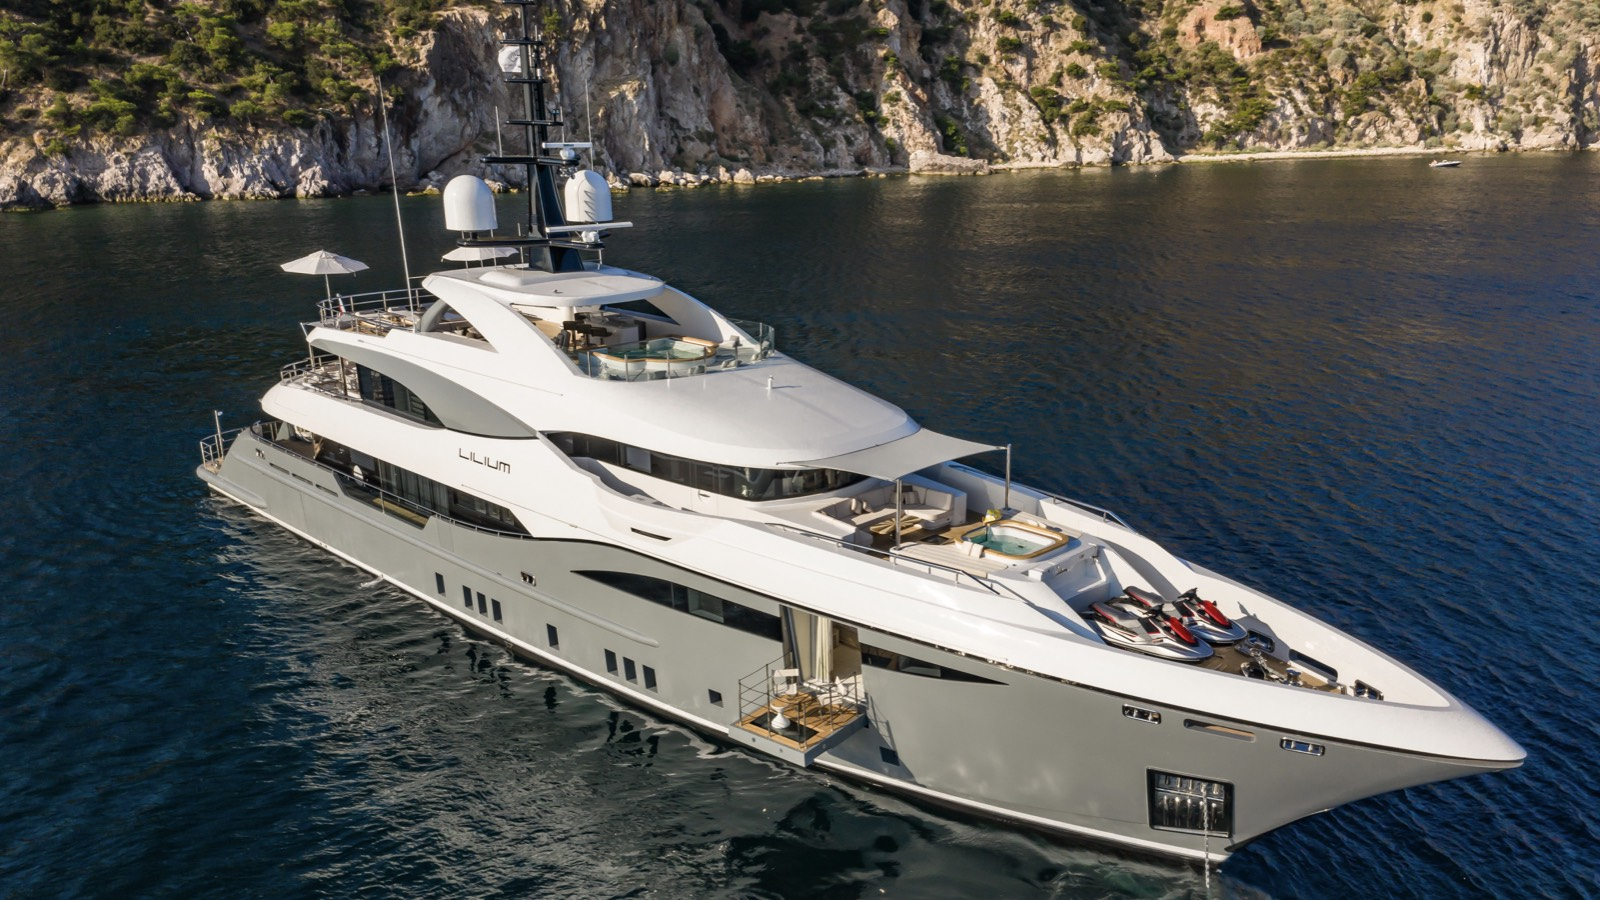 LILIUM Yacht for Sale - IYC